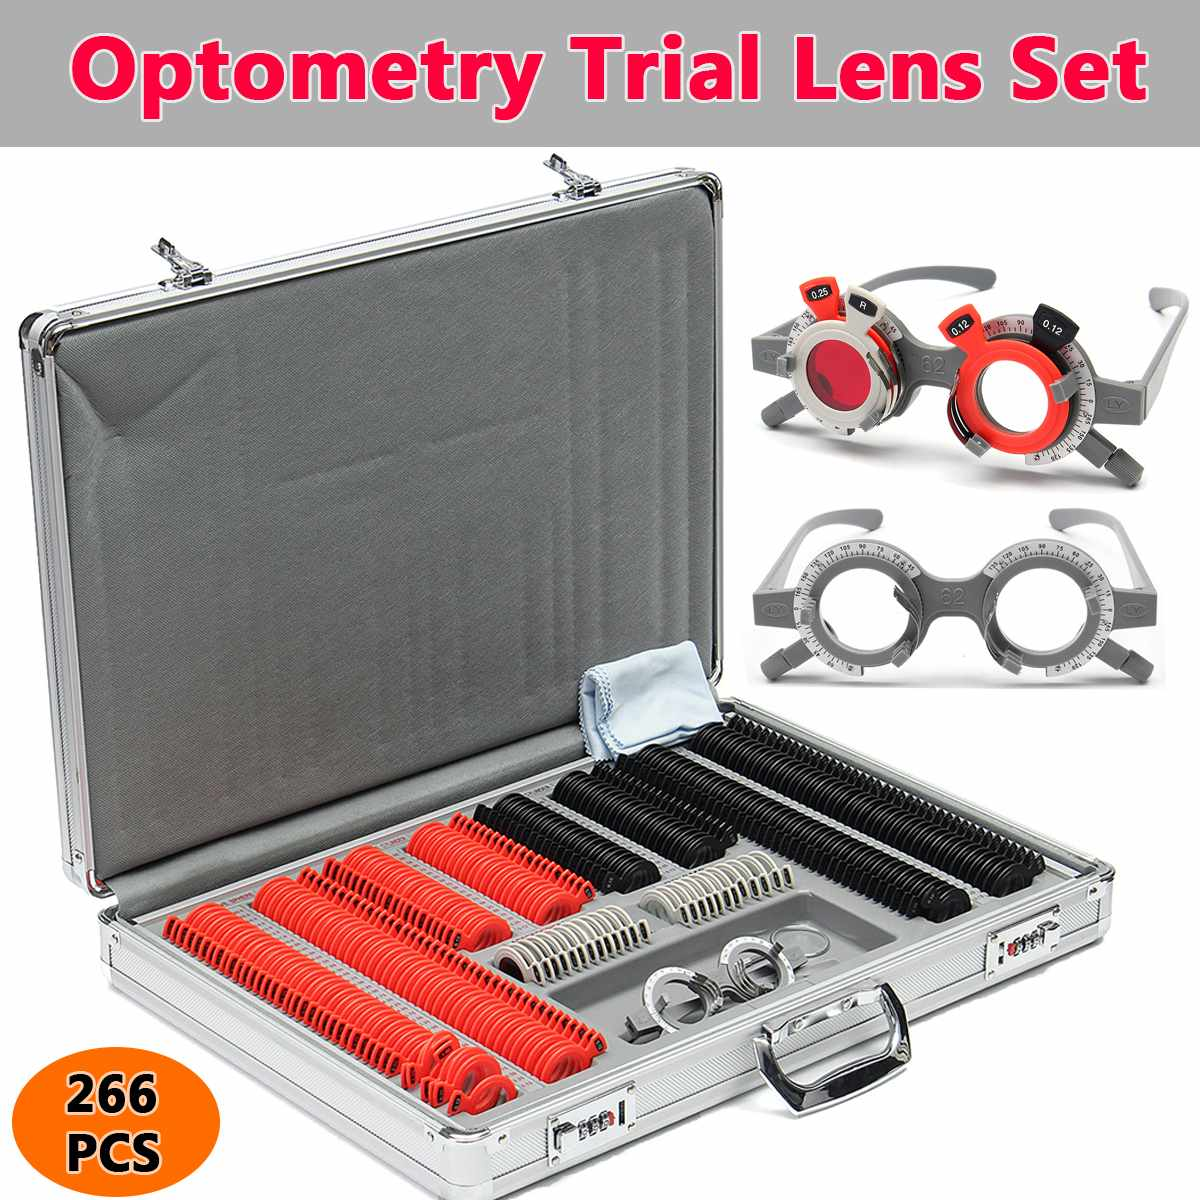 266Pcs Optical Trail Lens Adjustable Optometry Metal Rim Case Kit Eye Test Set Ophthalmologist Optometry Test Trial Frame Glass